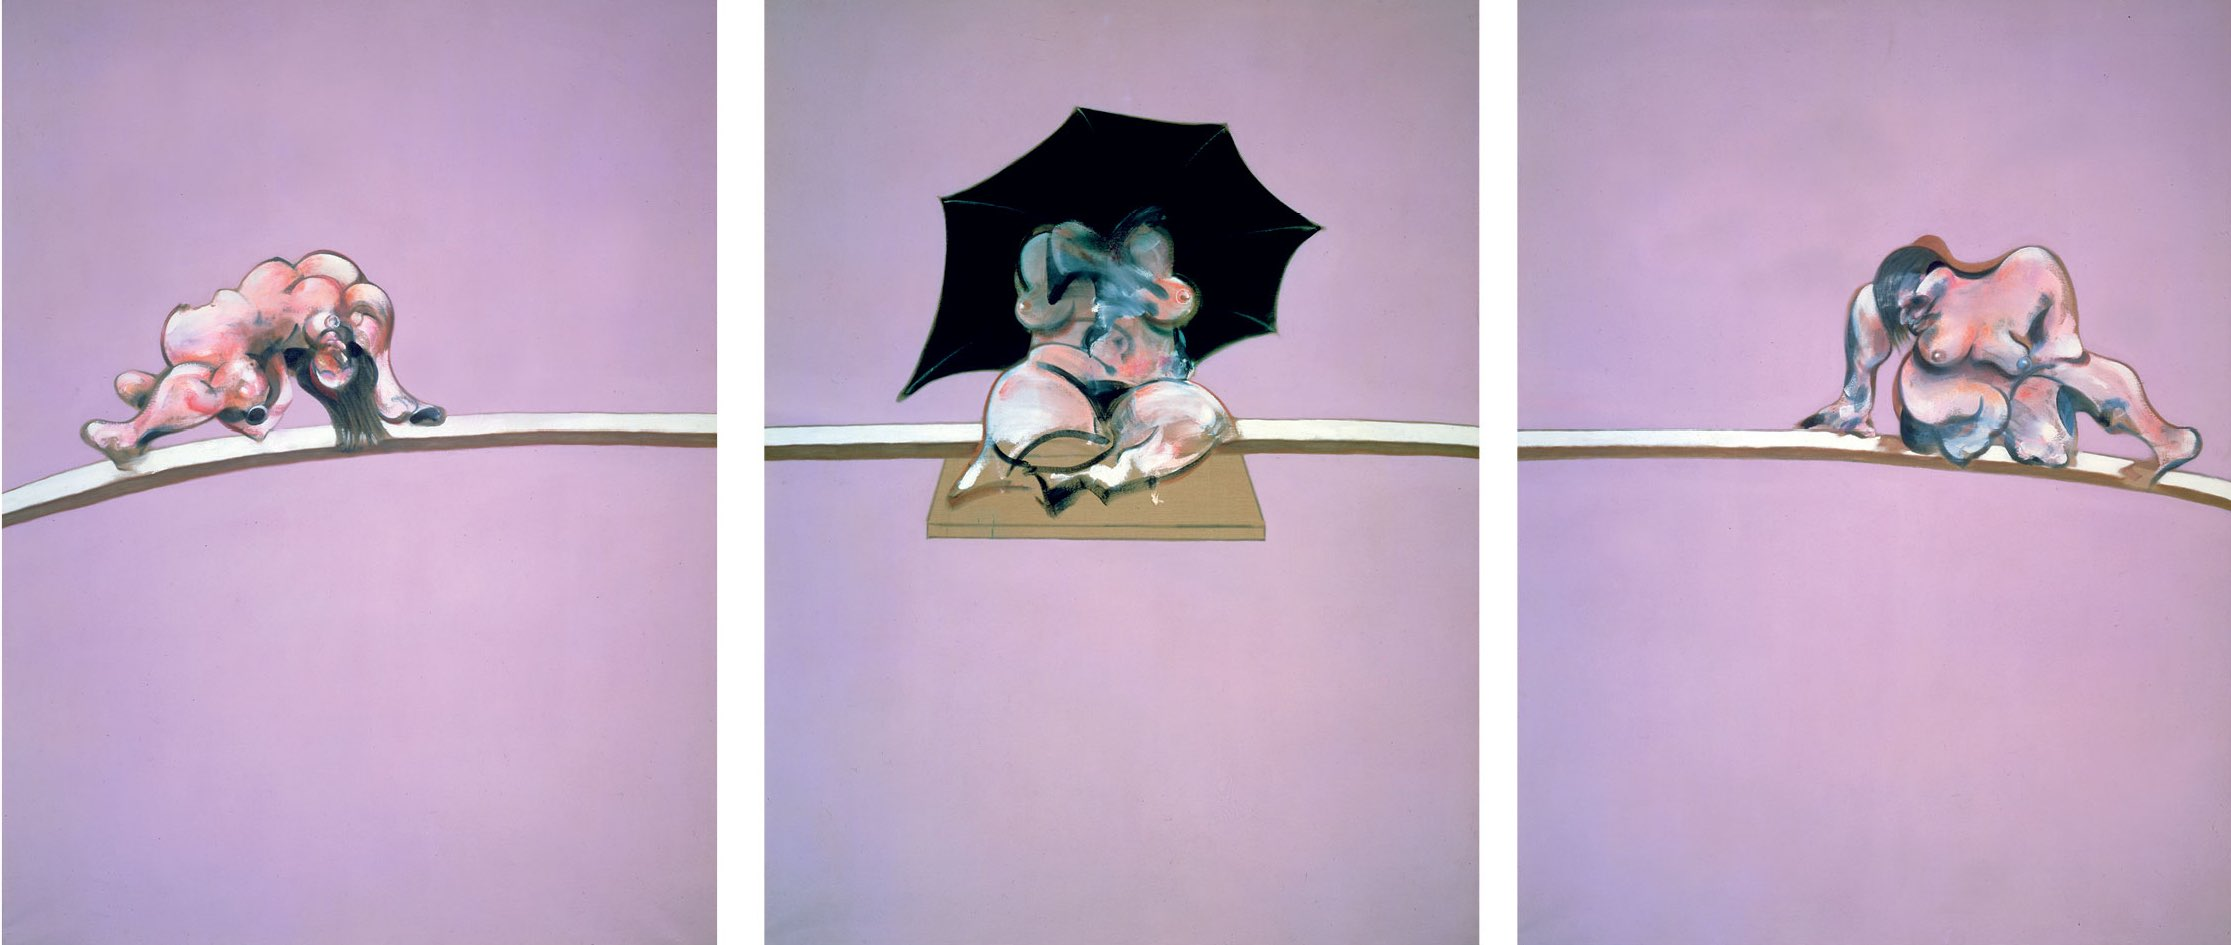 Francis Bacon a Monte-Carlo, 1981 - (c) Eddy Batache - courtesy Francis Bacon MB Art Foundation - MB Art Collection